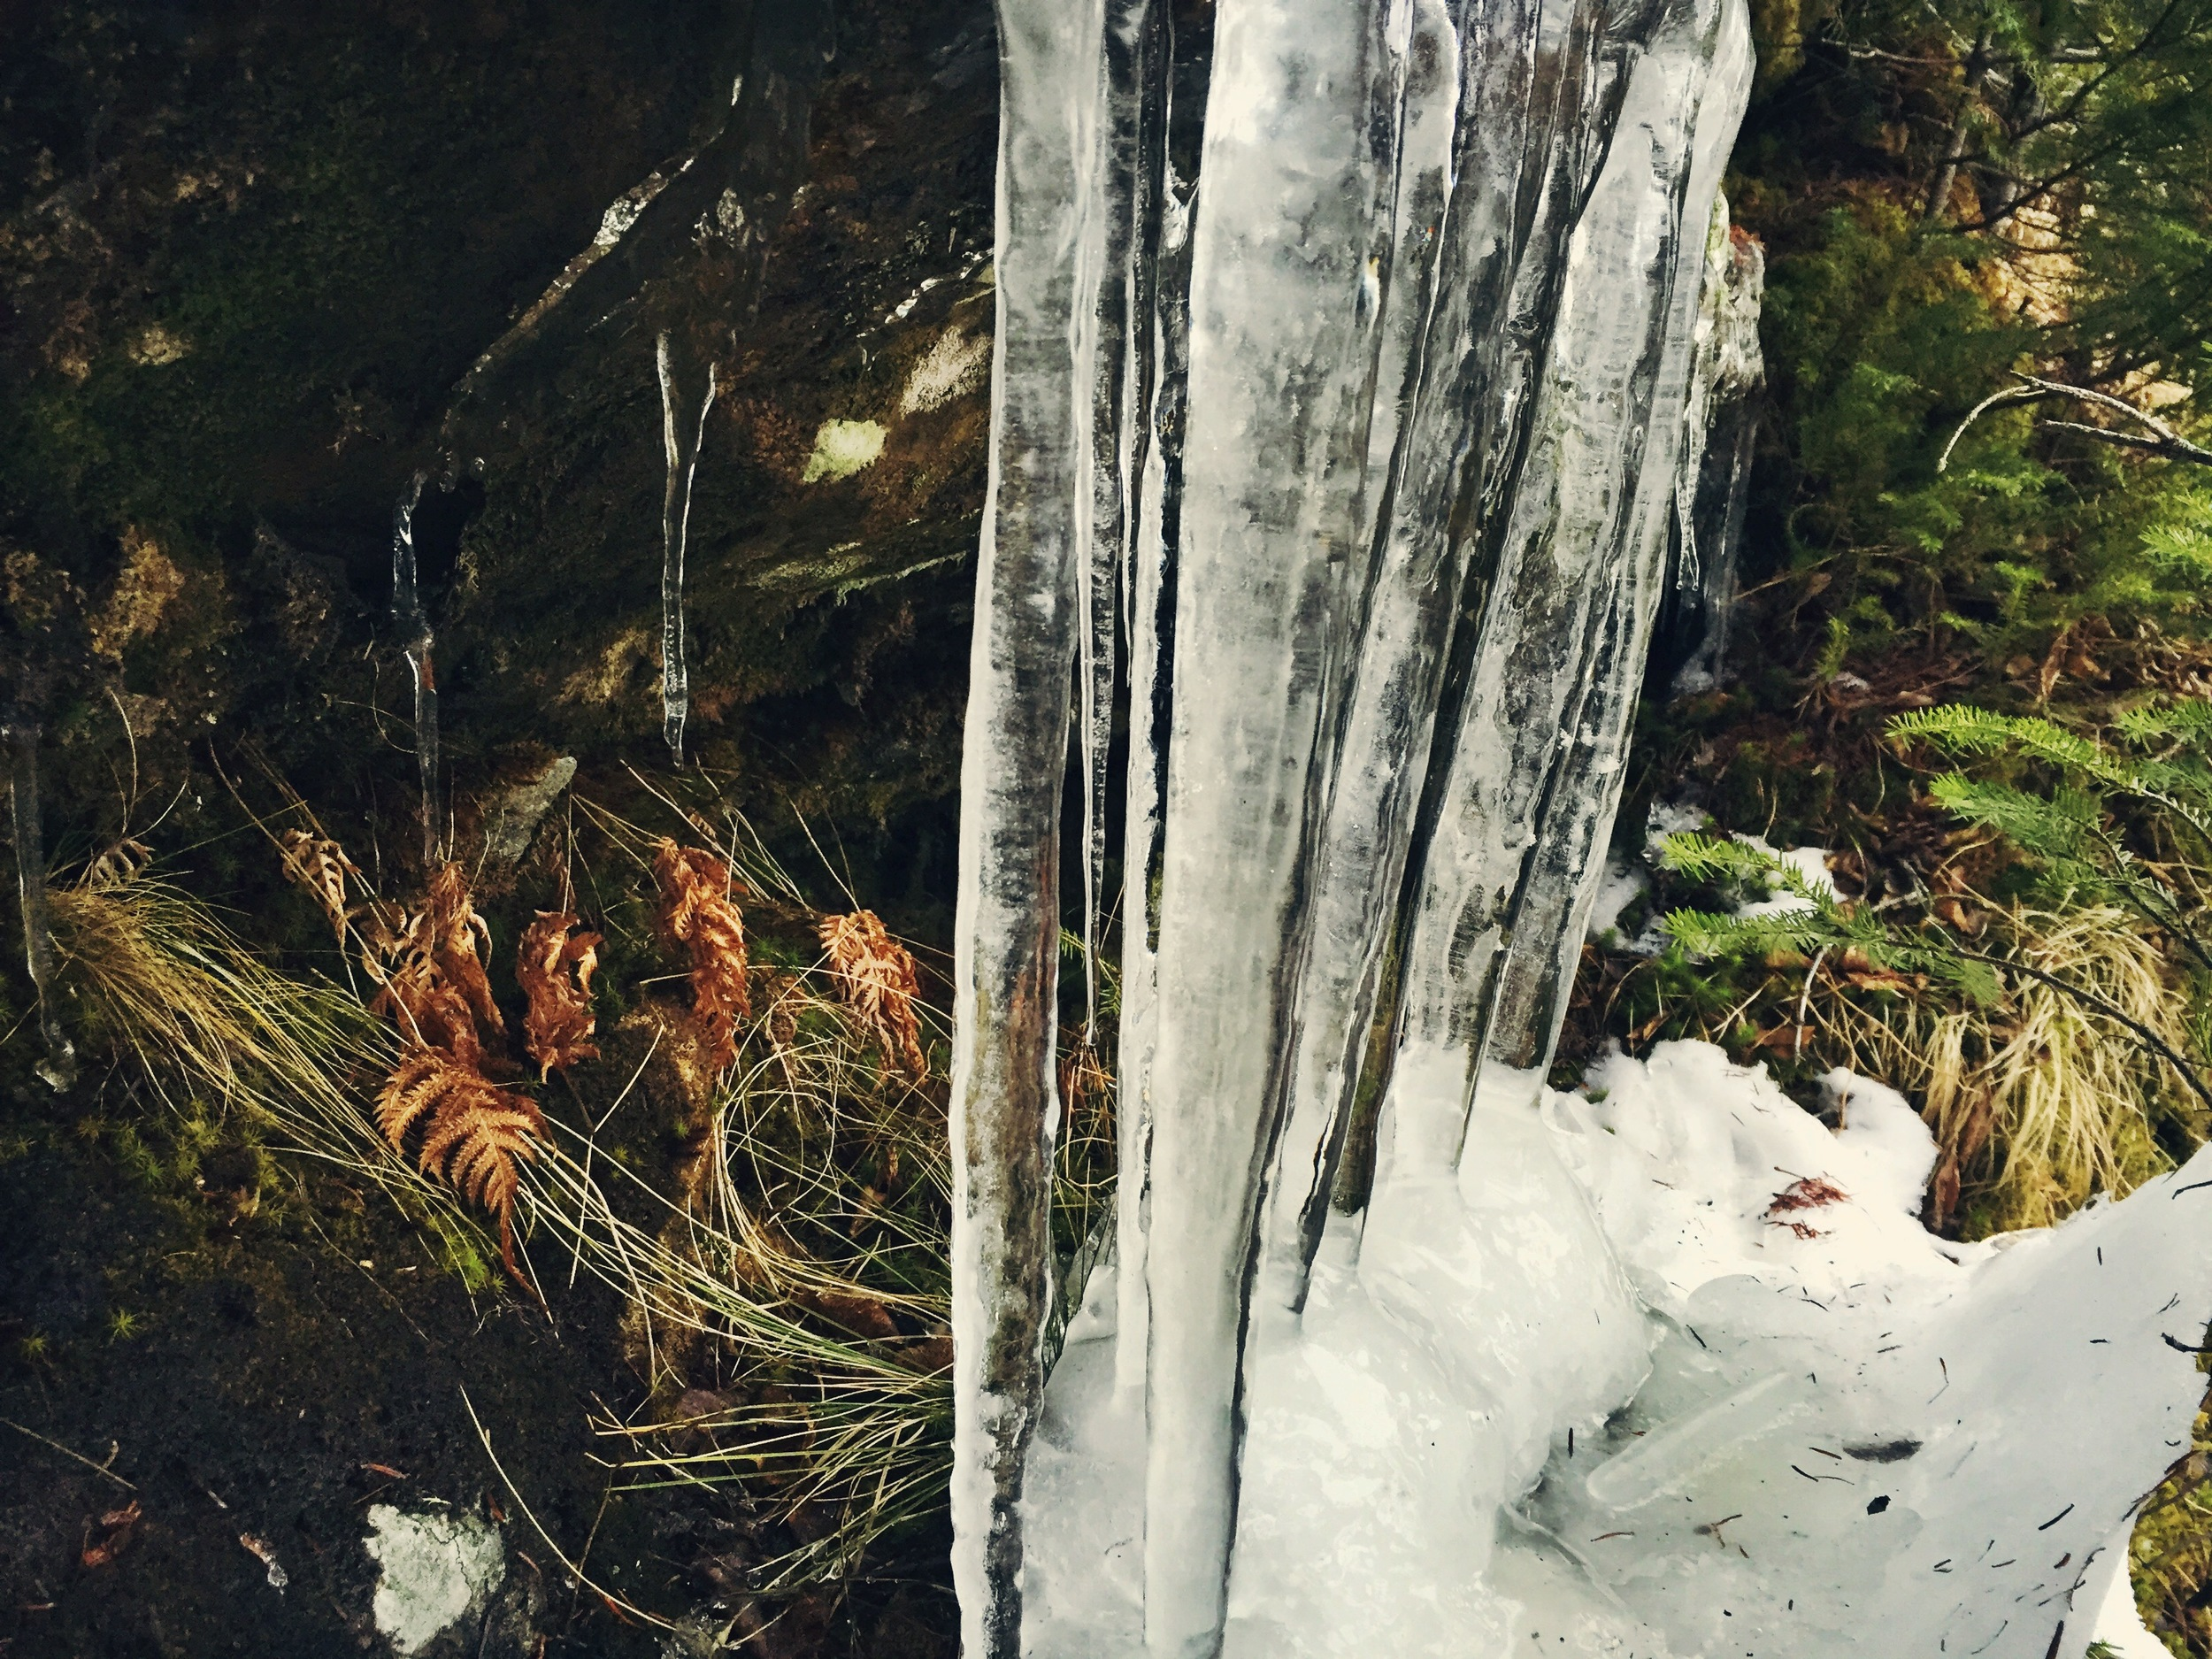 The mountain had yet to succumb to winter's icy grip.